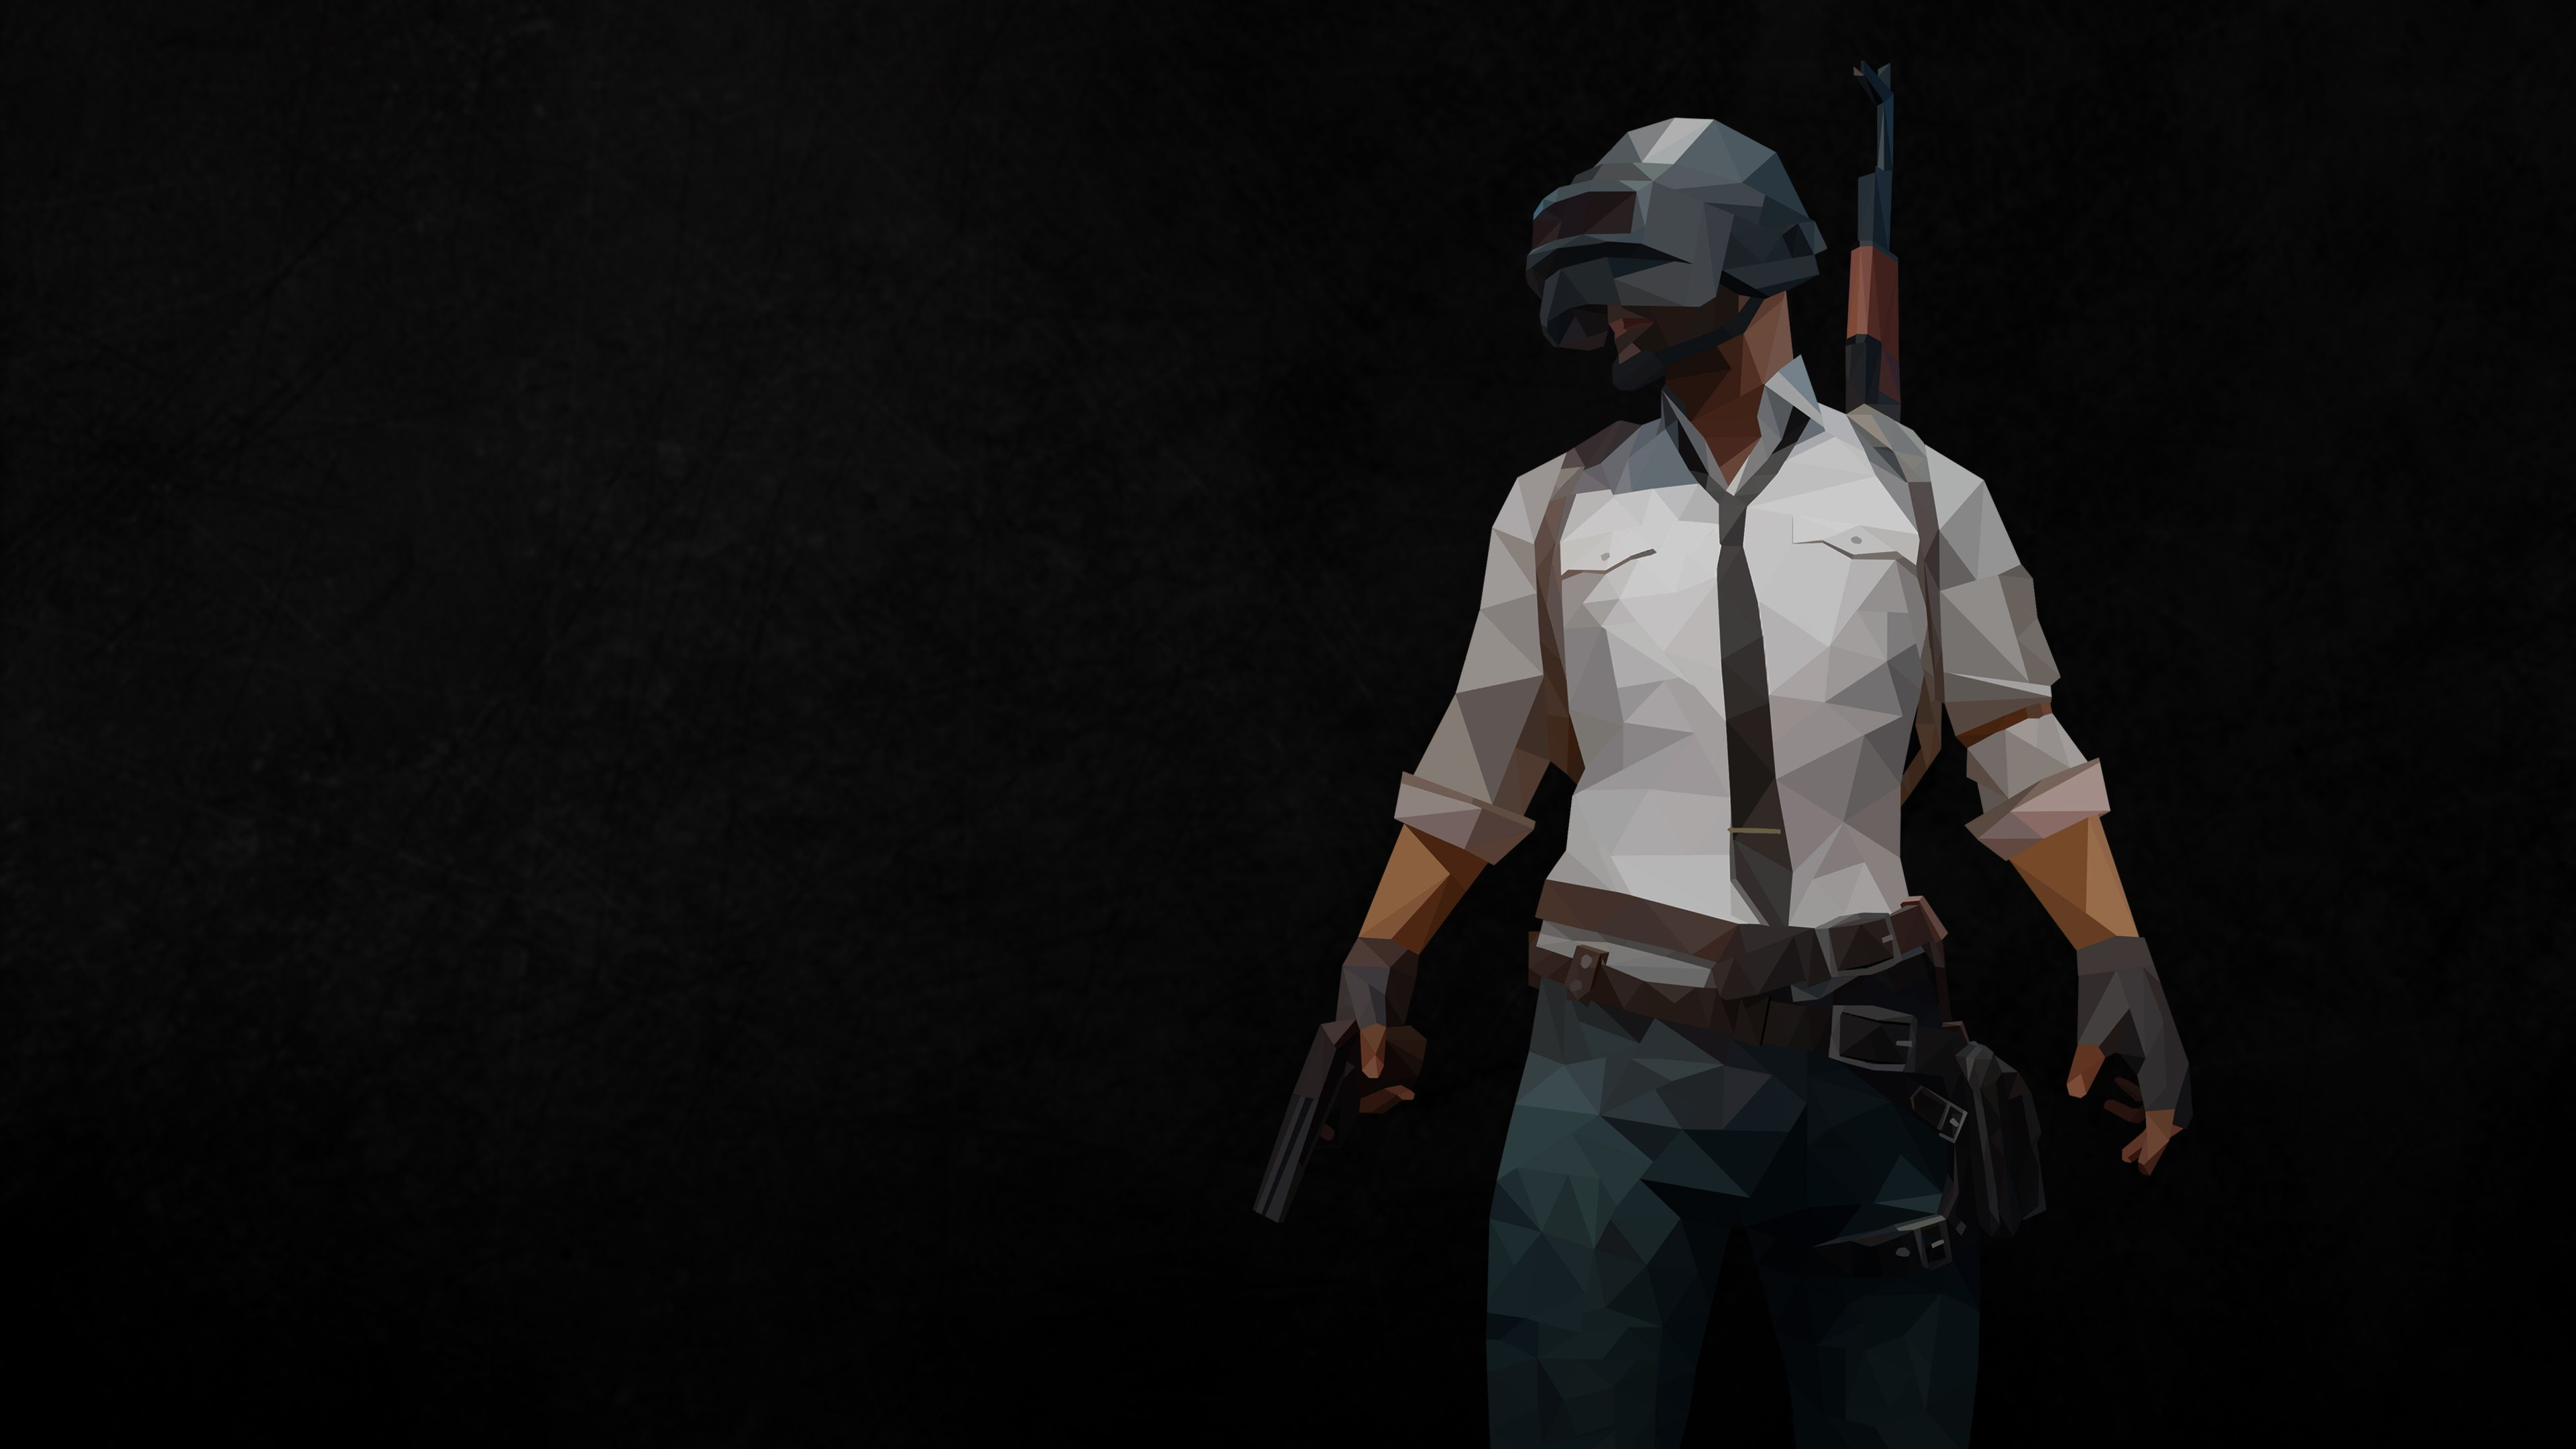 Wallpaper 4k Pubg Polygon Arts 4k 2018 Games Wallpapers 4k